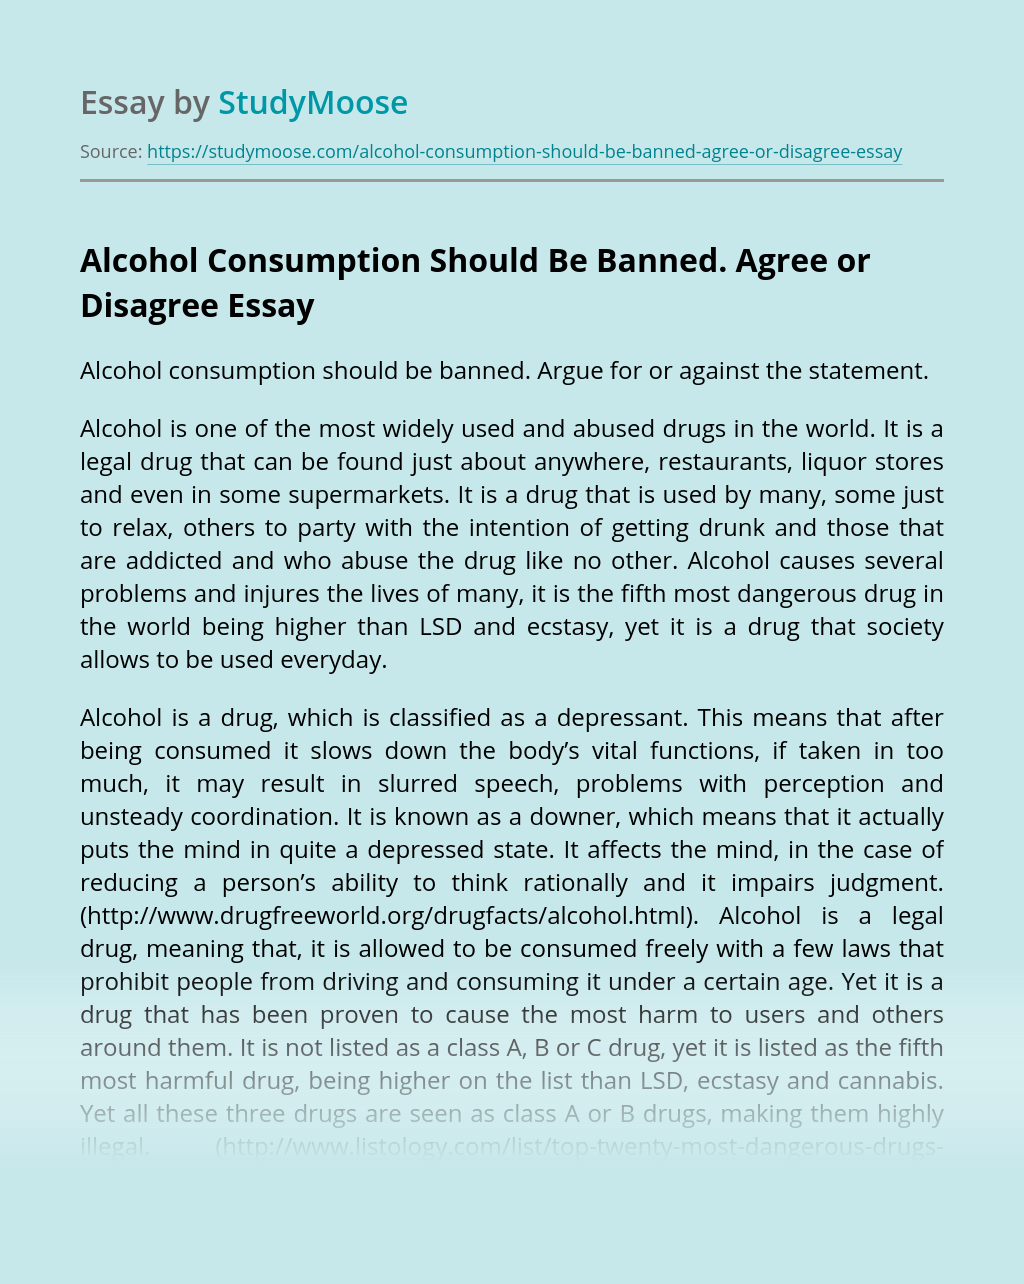 Alcohol Consumption Should Be Banned. Agree or Disagree